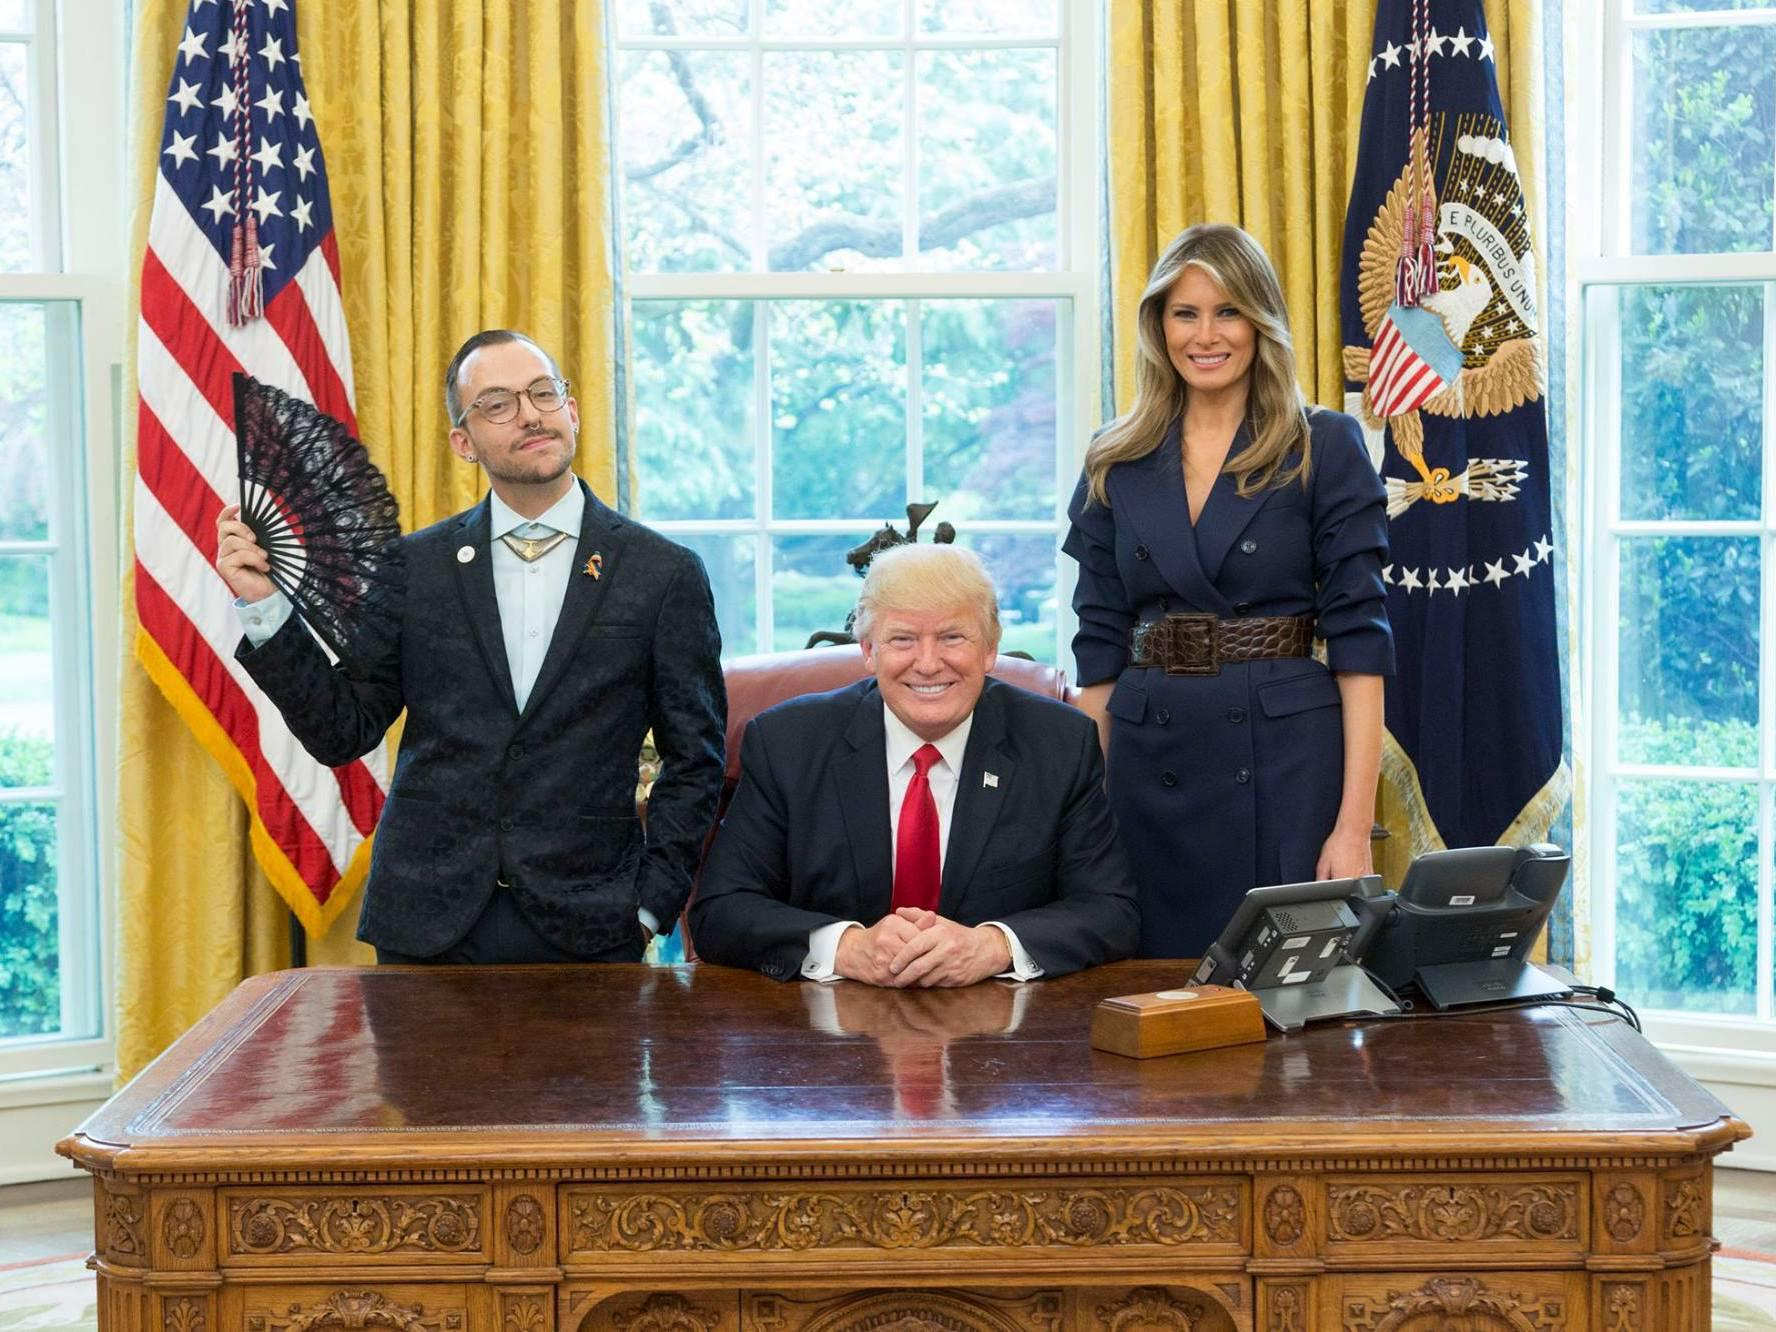 Rhode Island Teacher of the Year Oval Office photo going viral